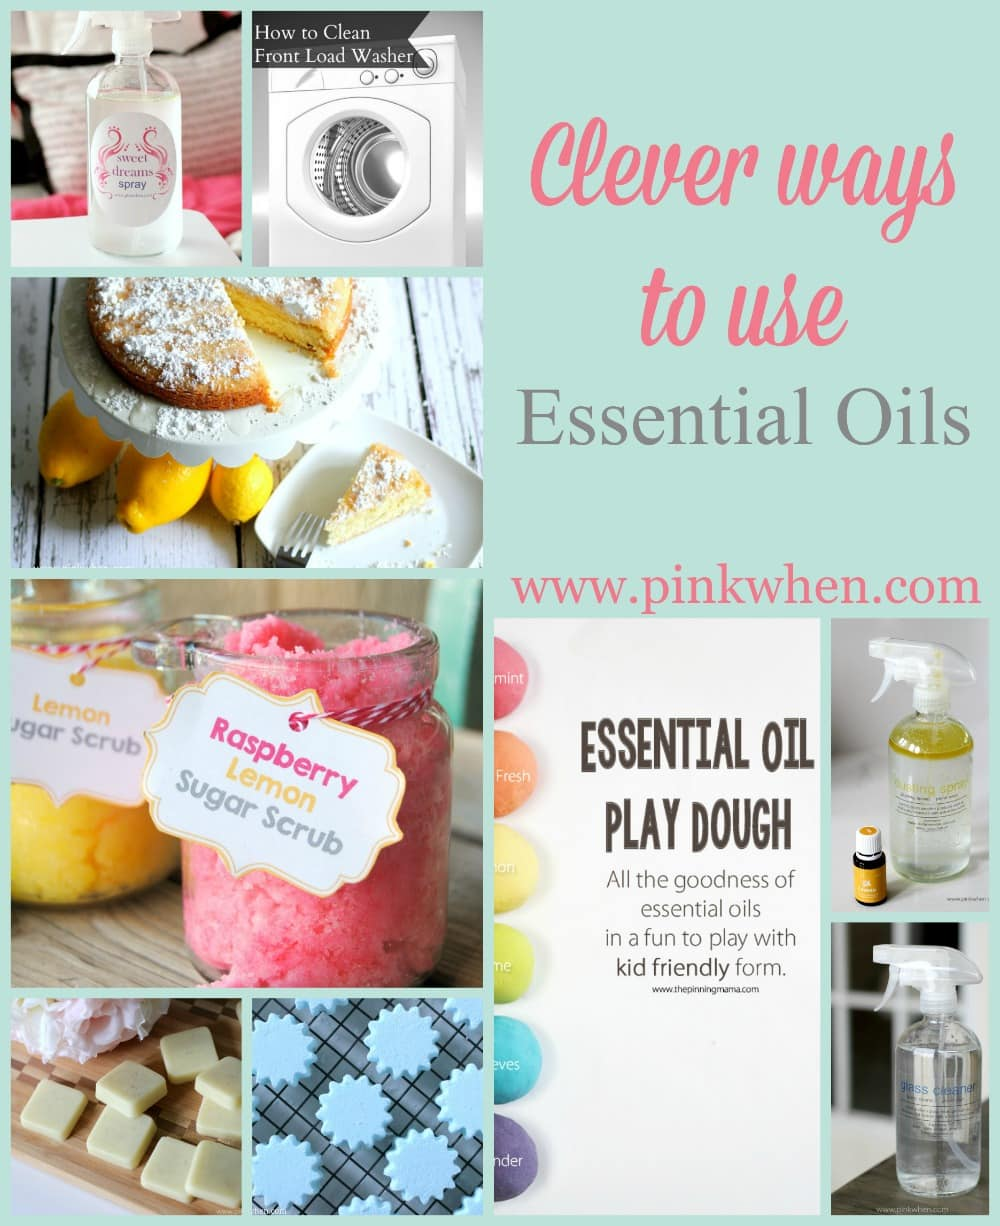 Clever ways to use essential oils